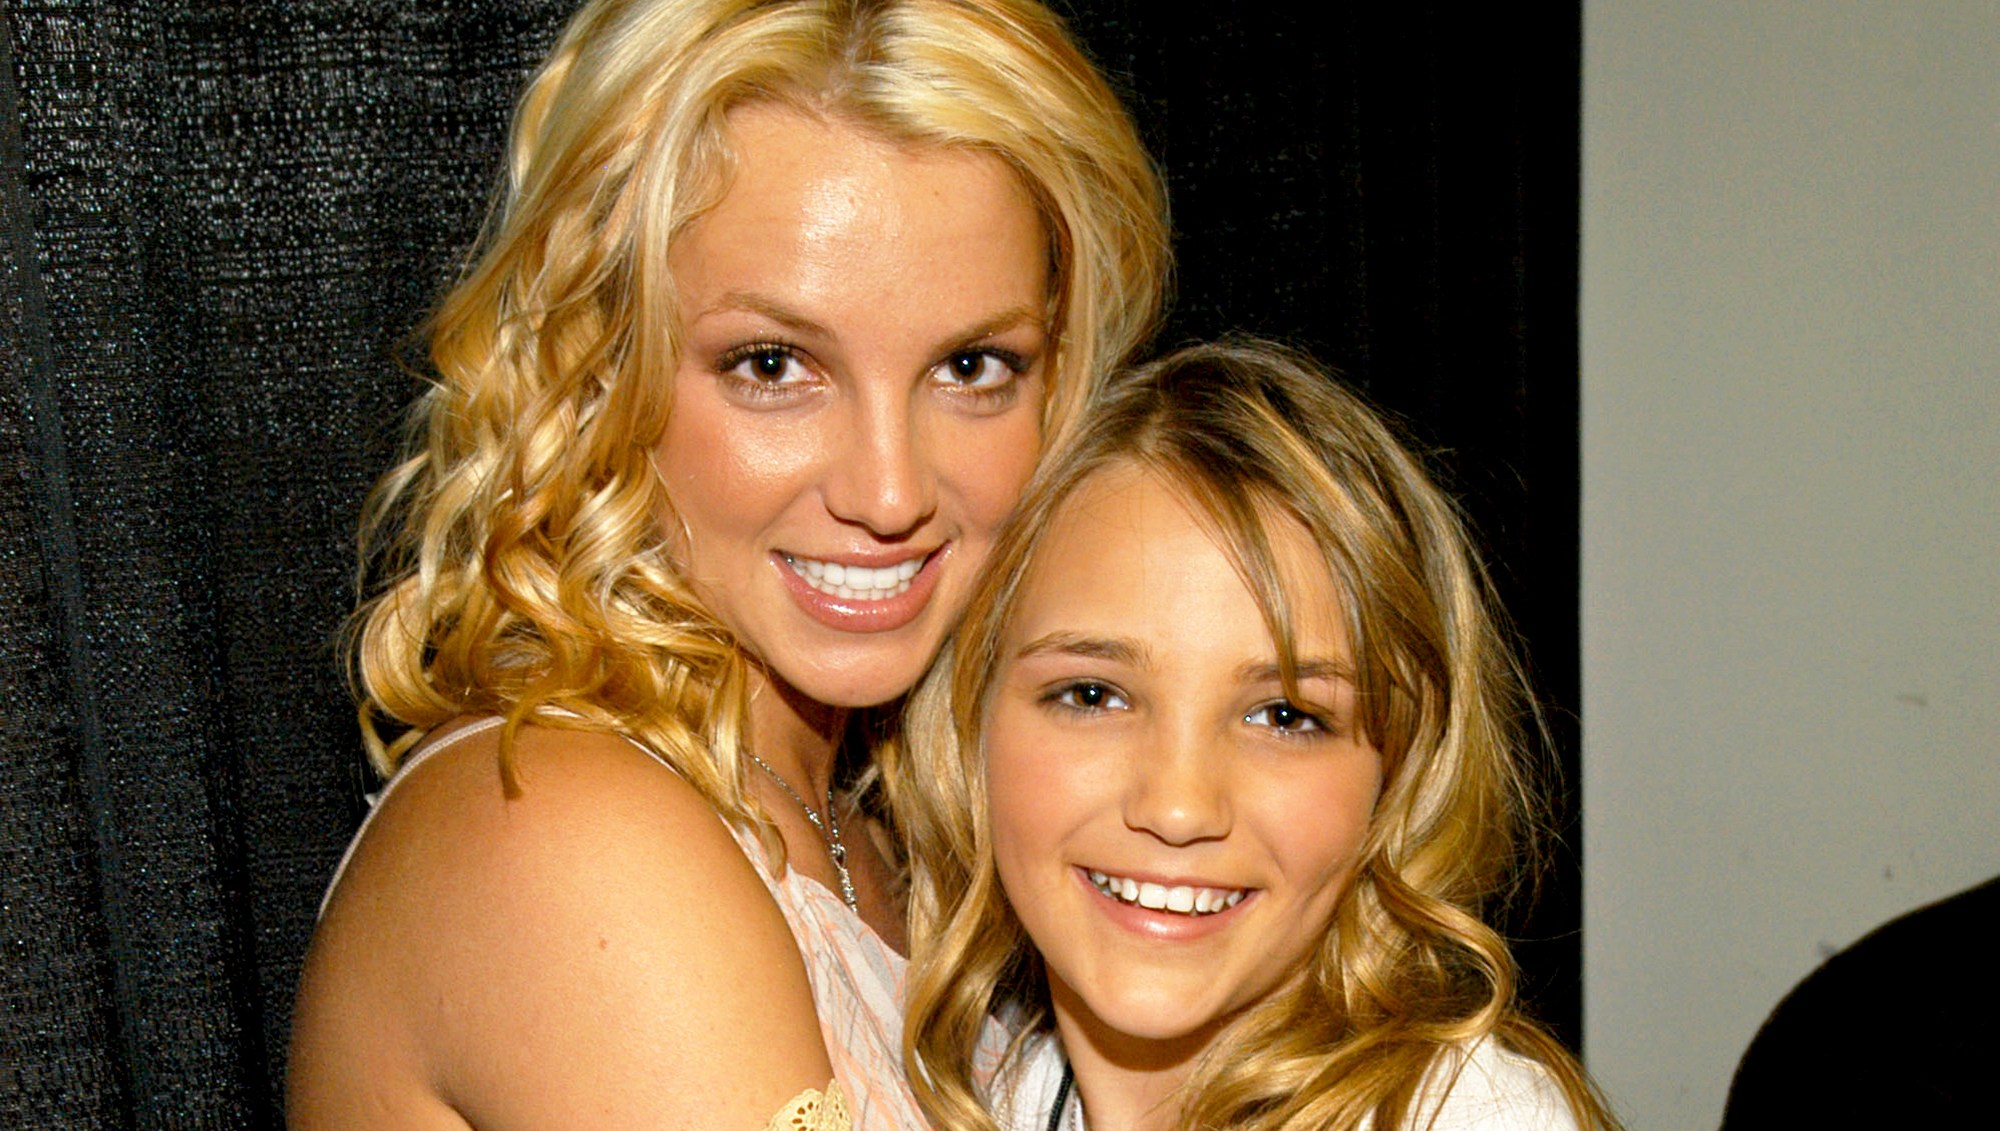 Britney Spears and Jamie-Lynn Spears attend the Nickelodeon Kids Choice Awards 2003.